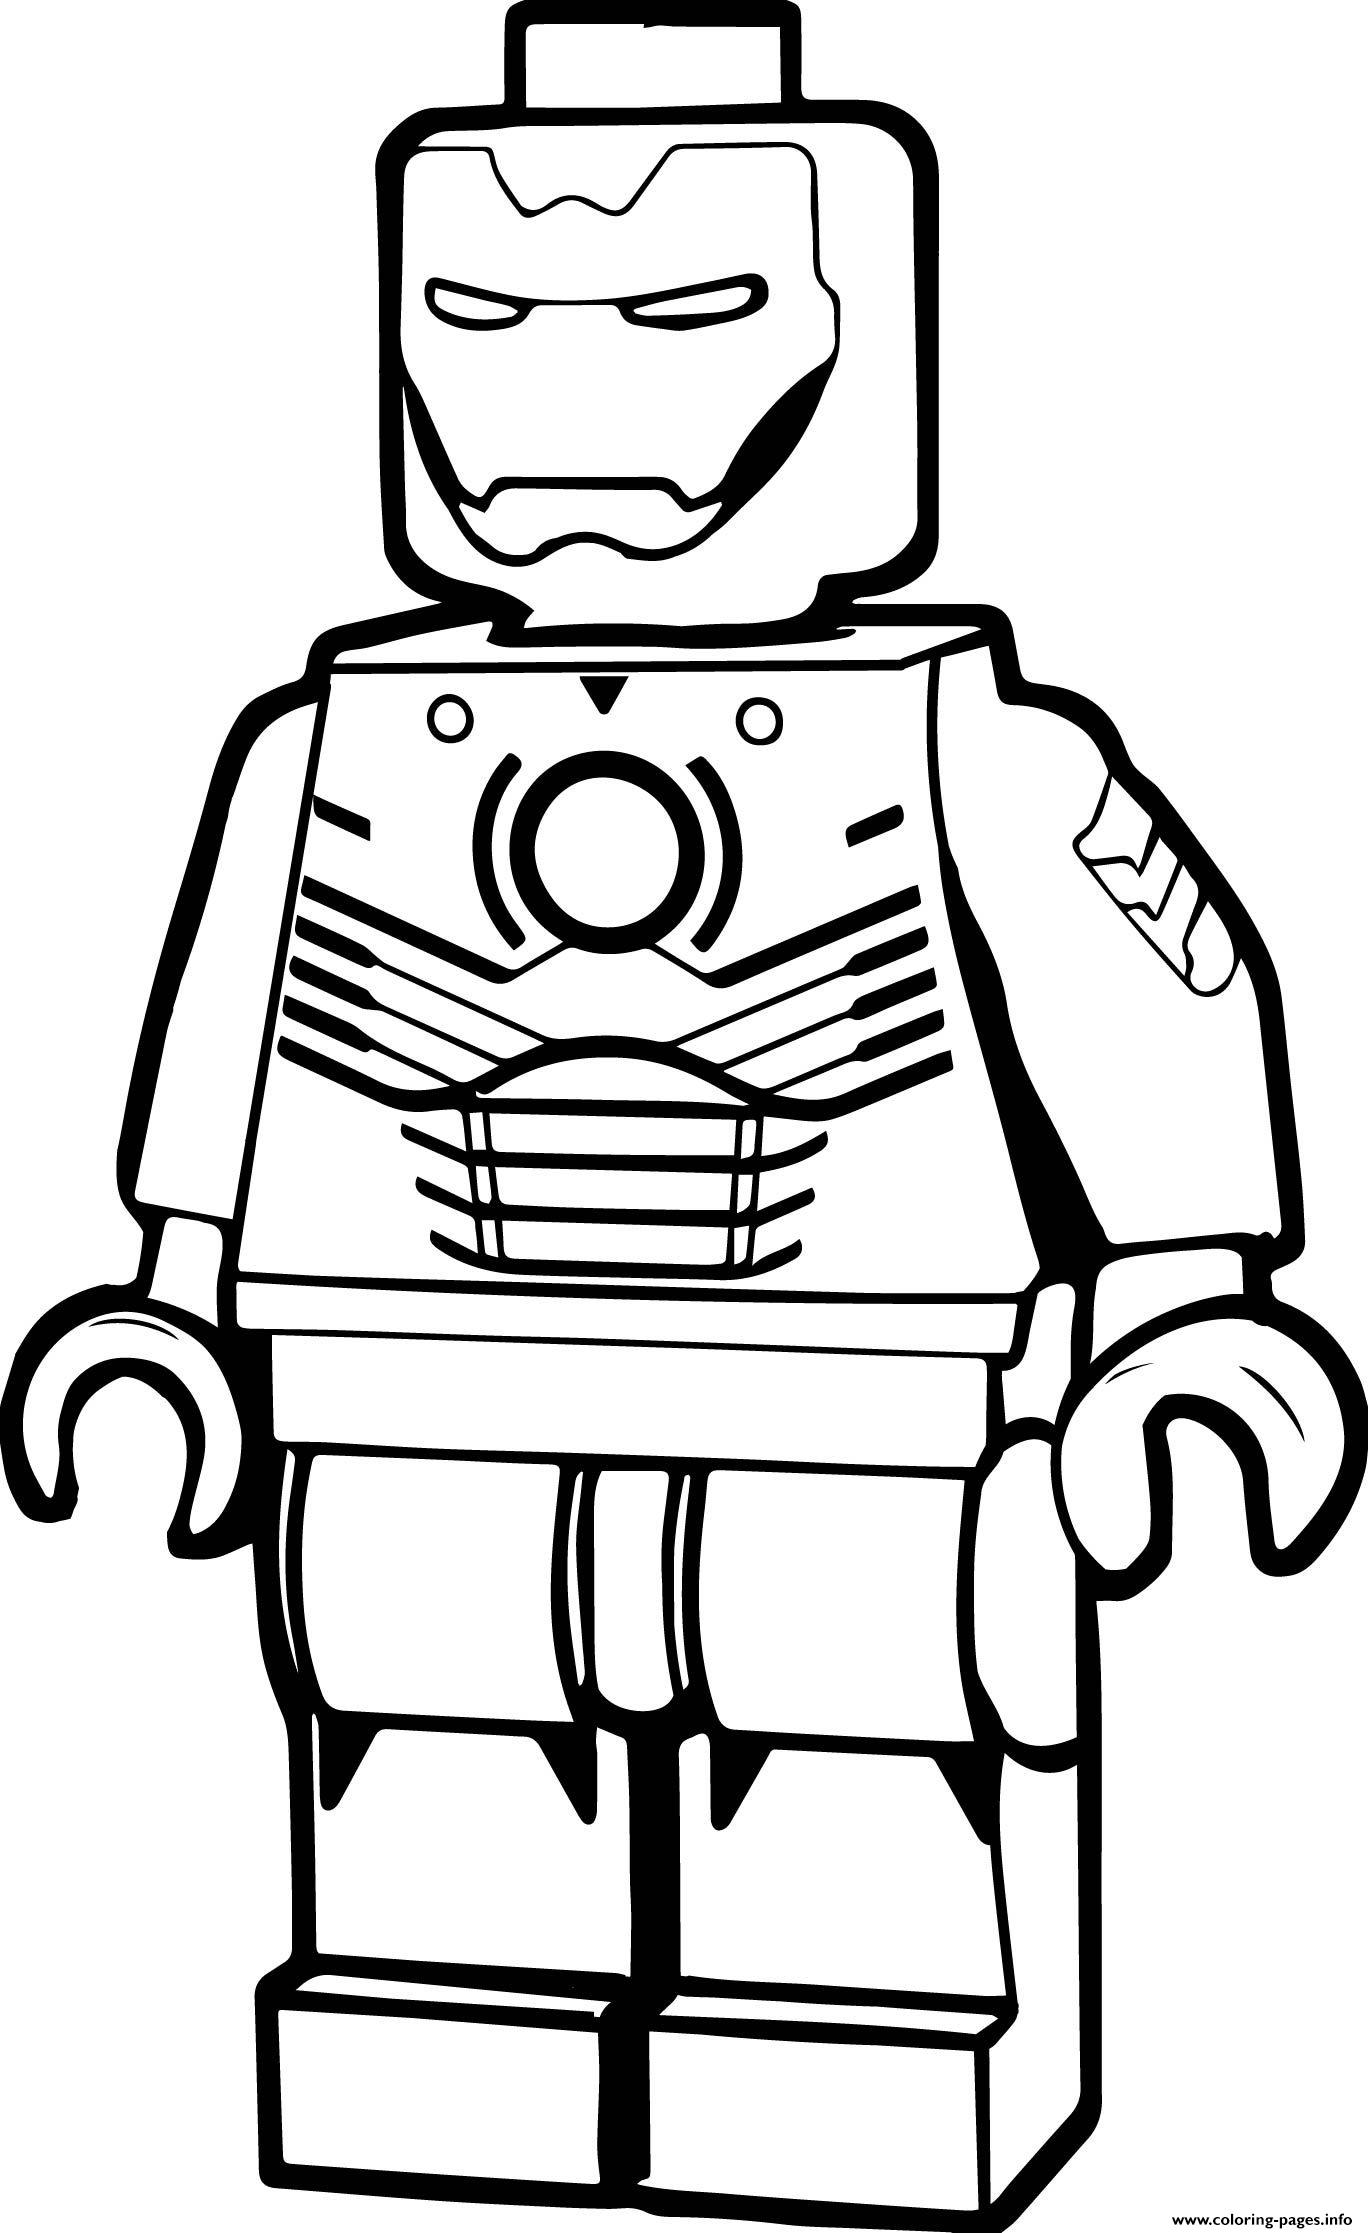 Lego Iron Man Cartoon Coloring